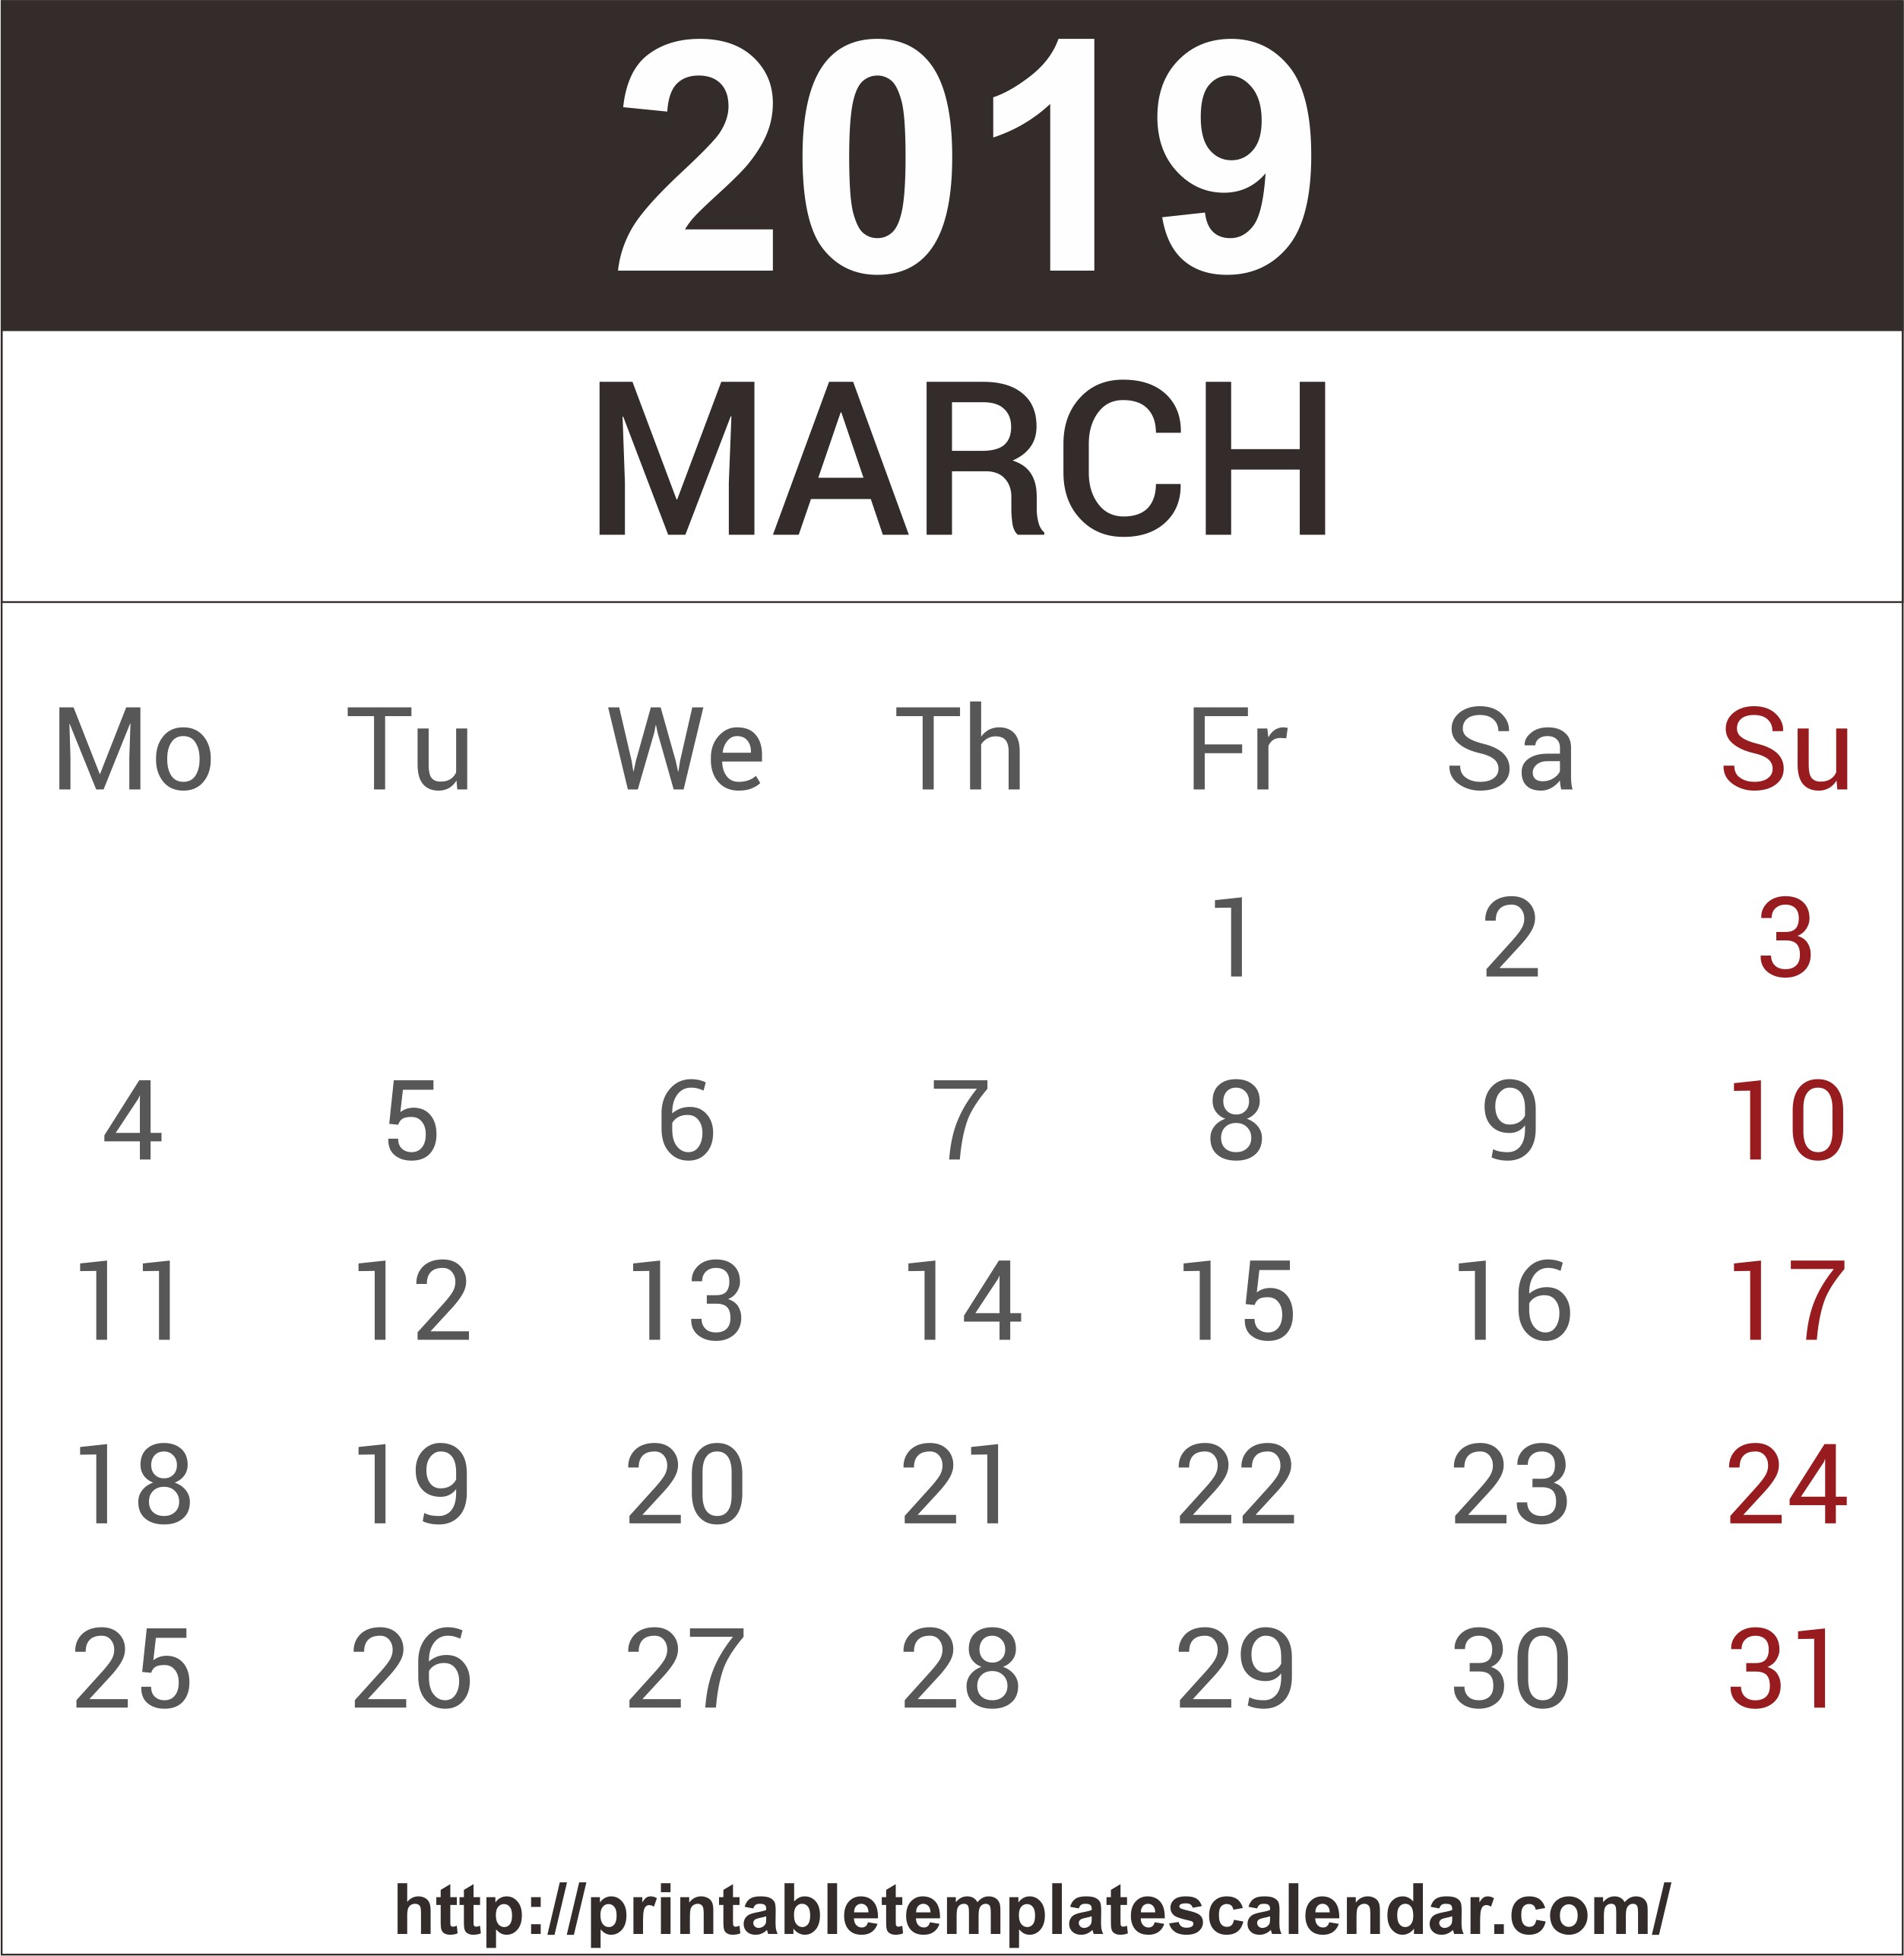 March Calendar 2019 Más Recientes March 2019 Printable Calendar Templates Pdf Excel Word Of March Calendar 2019 Más Populares February March Calendar 2019 2018 Printable Calendar Store